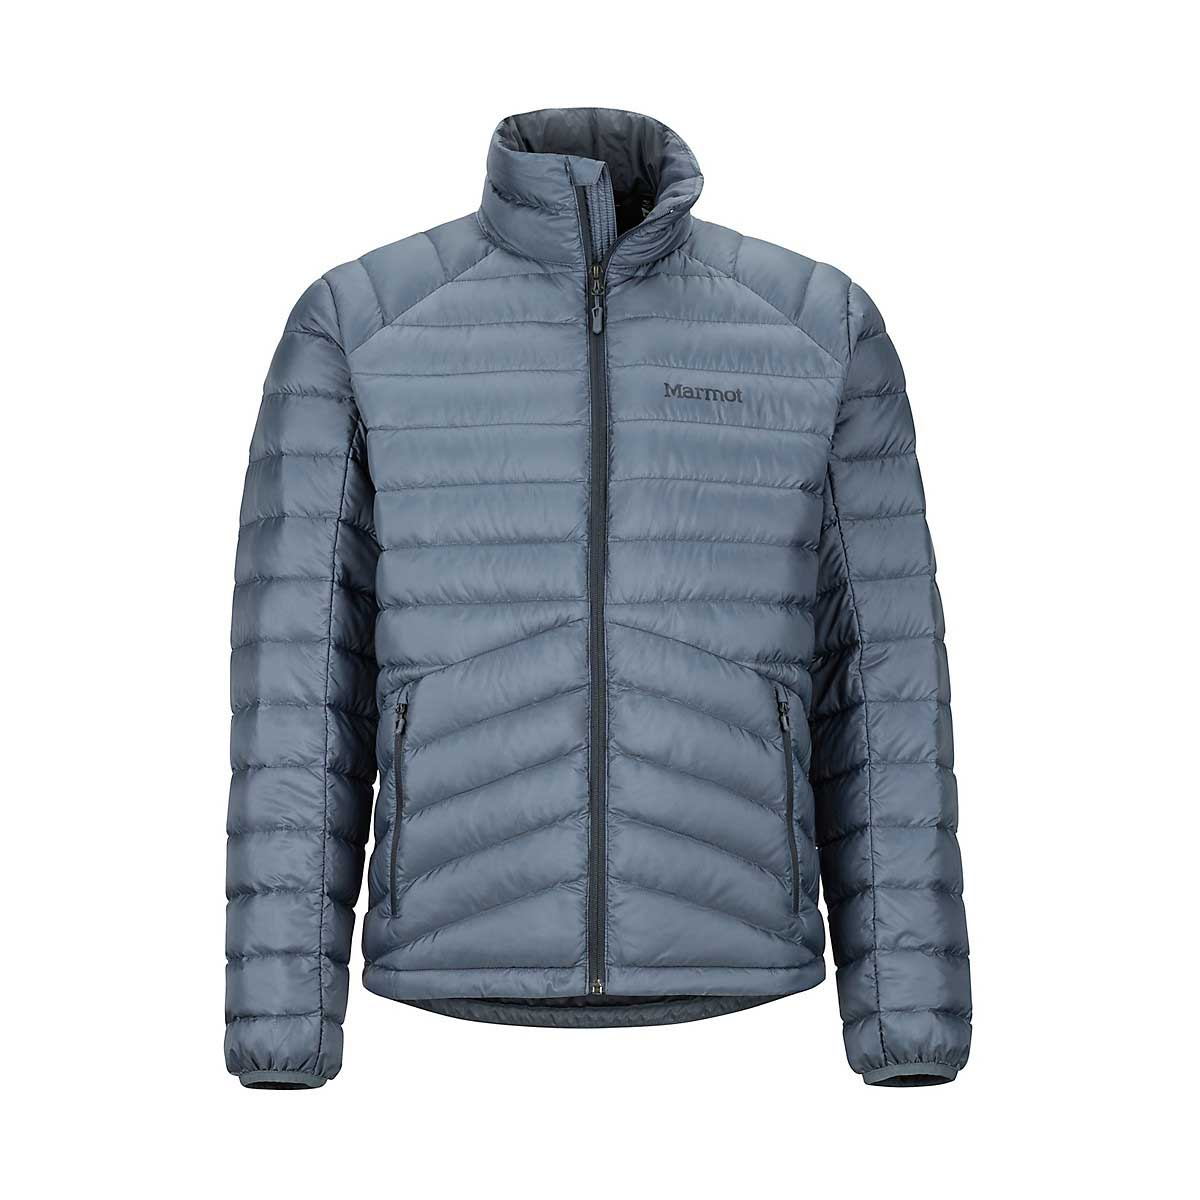 Marmot Men's Highlander Down Jacket in Steel Onyx